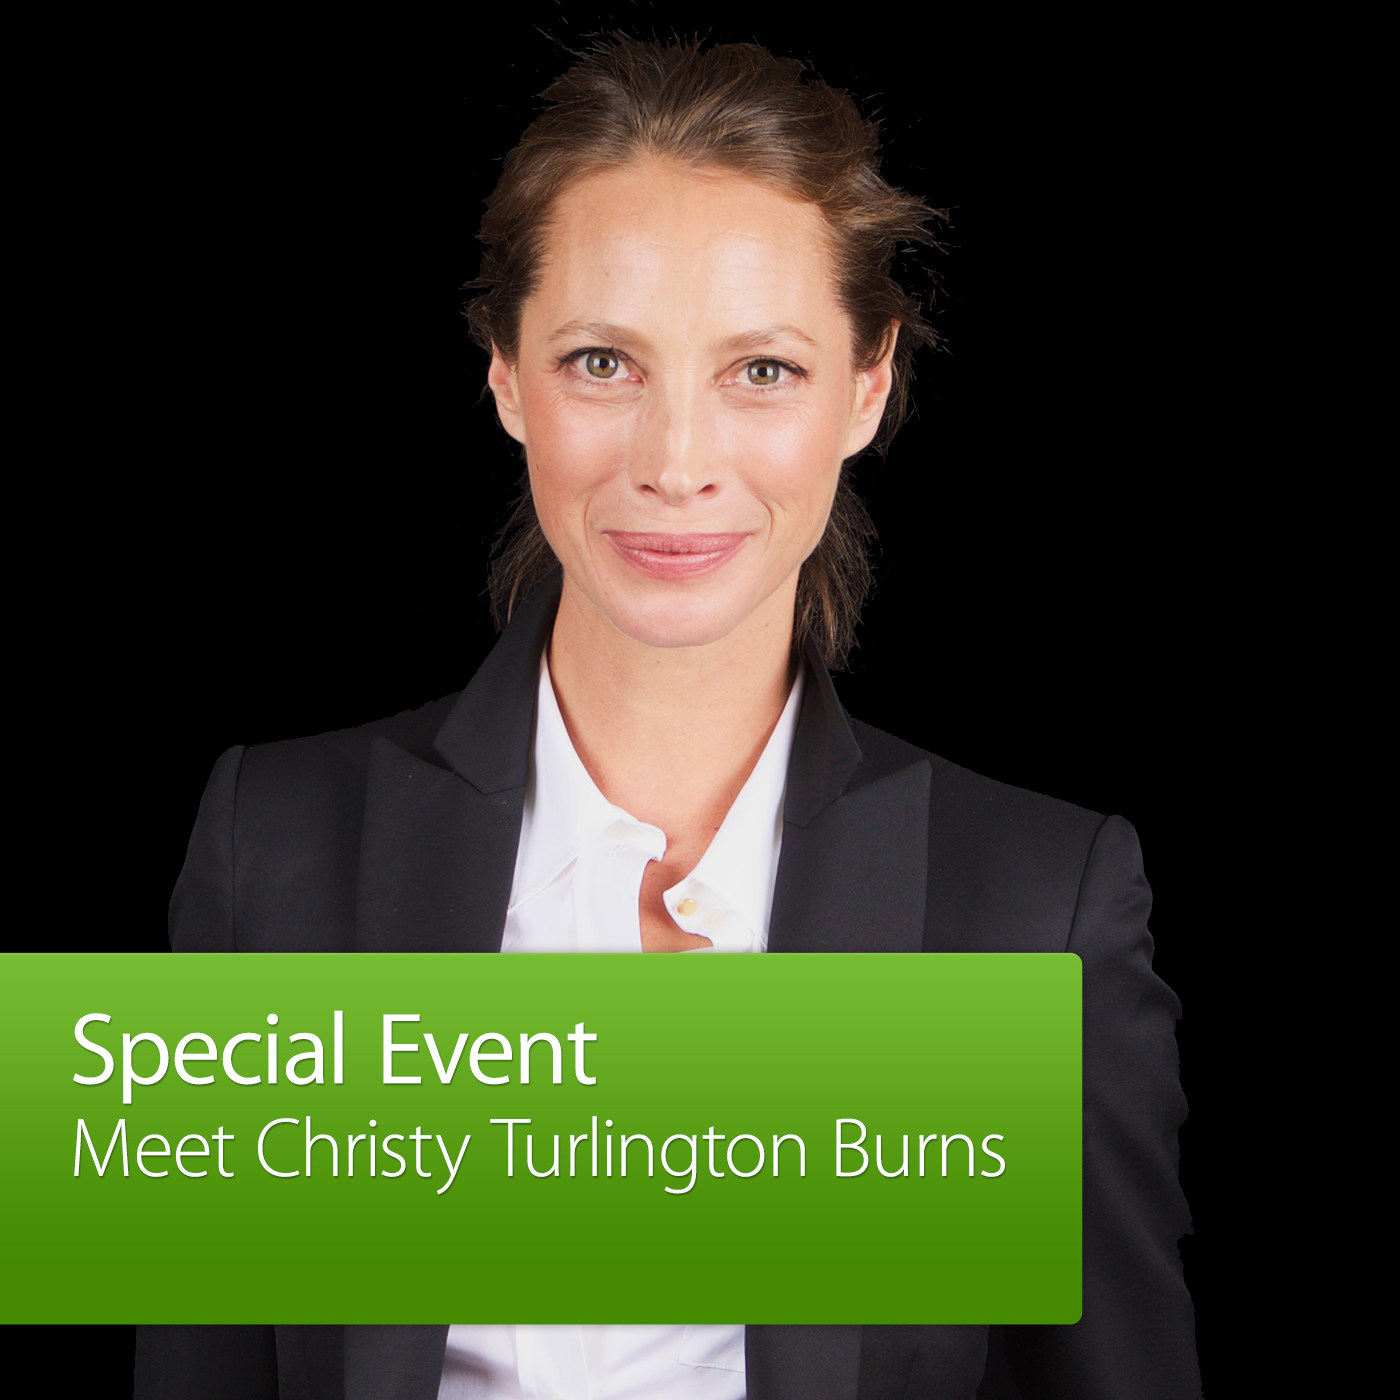 Meet Christy Turlington Burns: Special Event